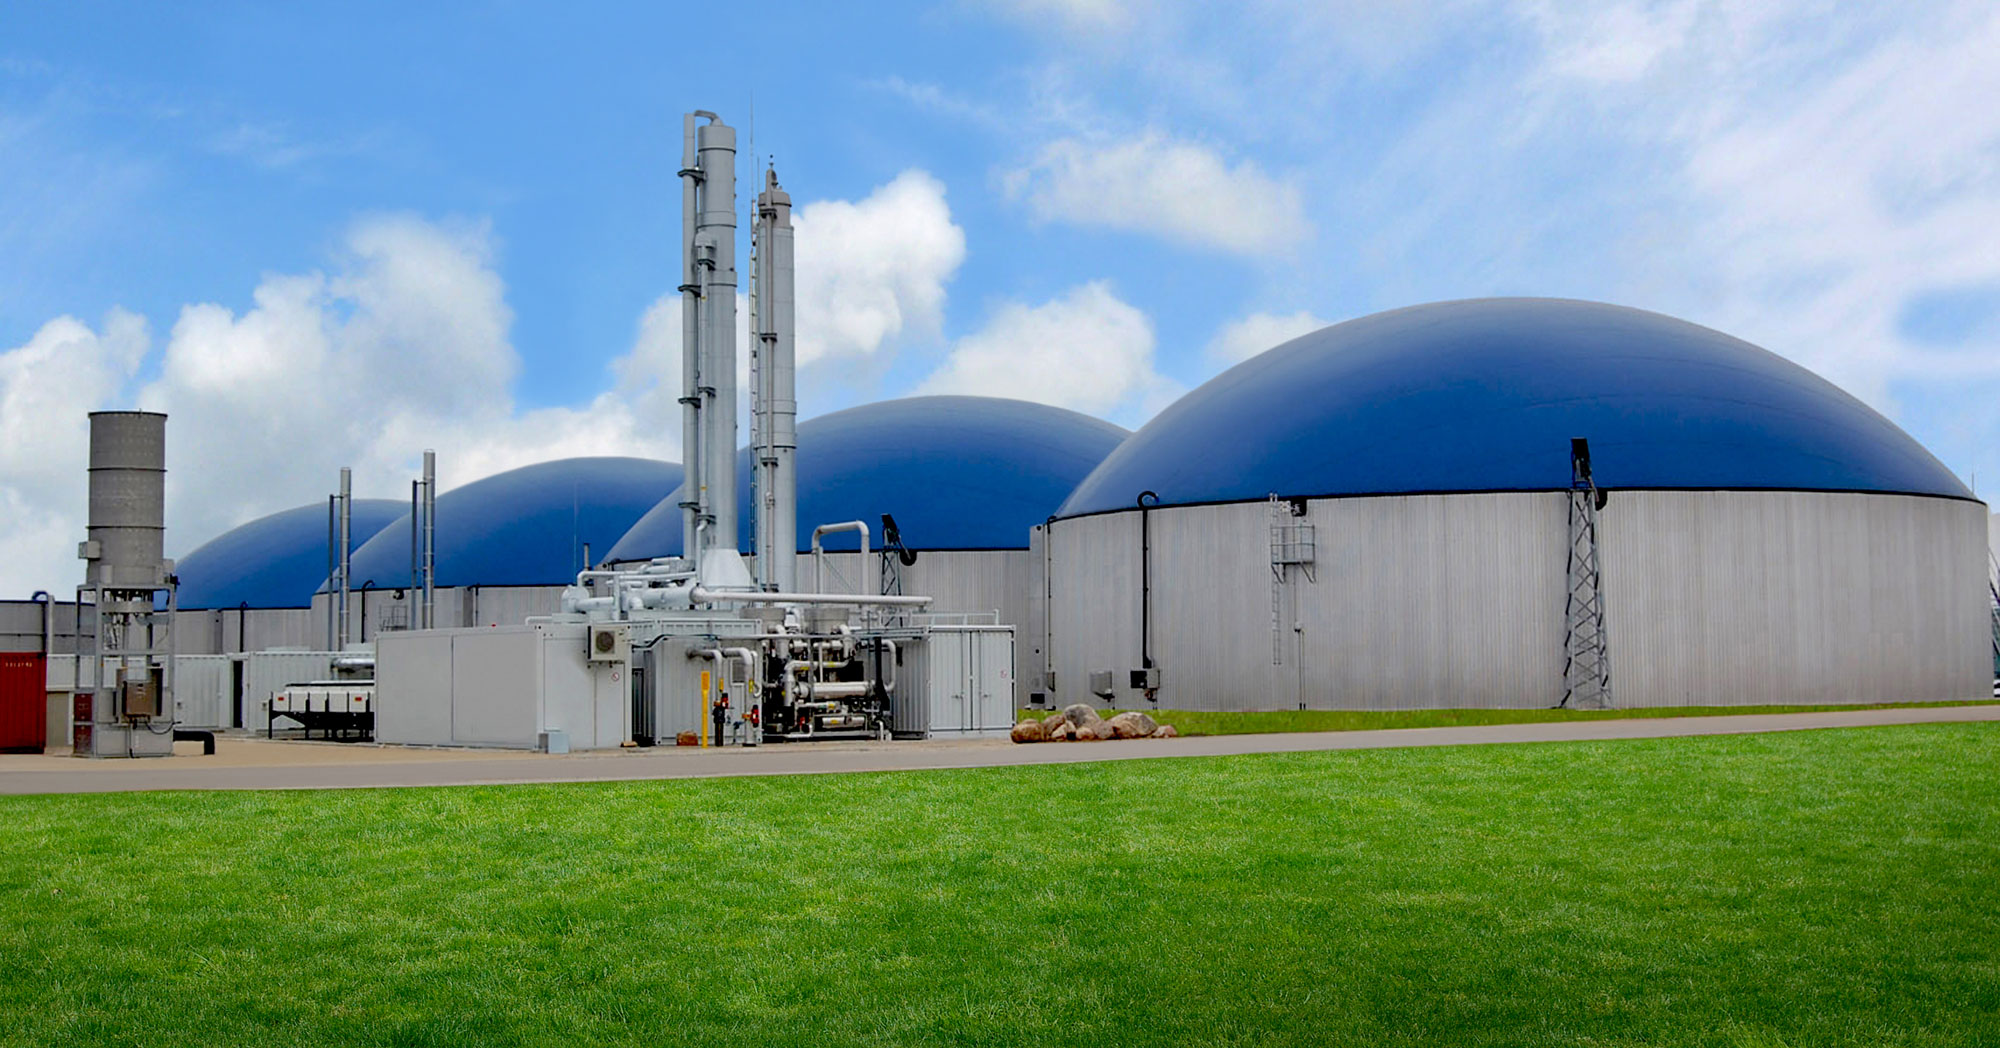 Europe's largest biogas plant is in the Balkans